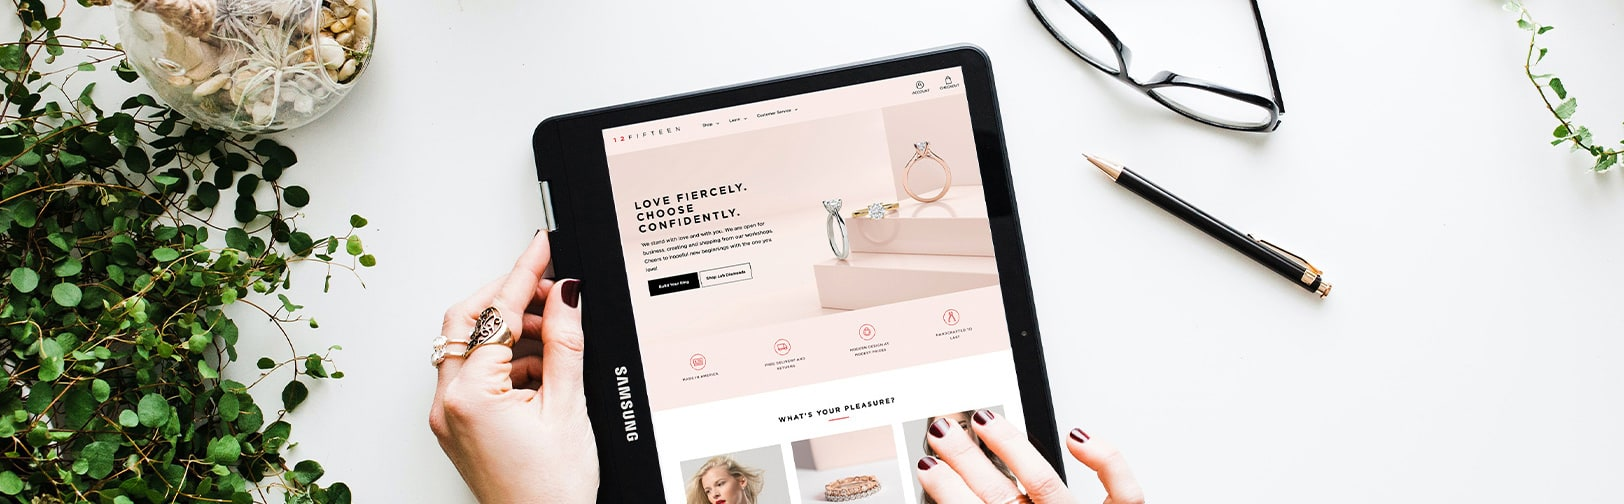 A person searching for fine jewelry using their tablet